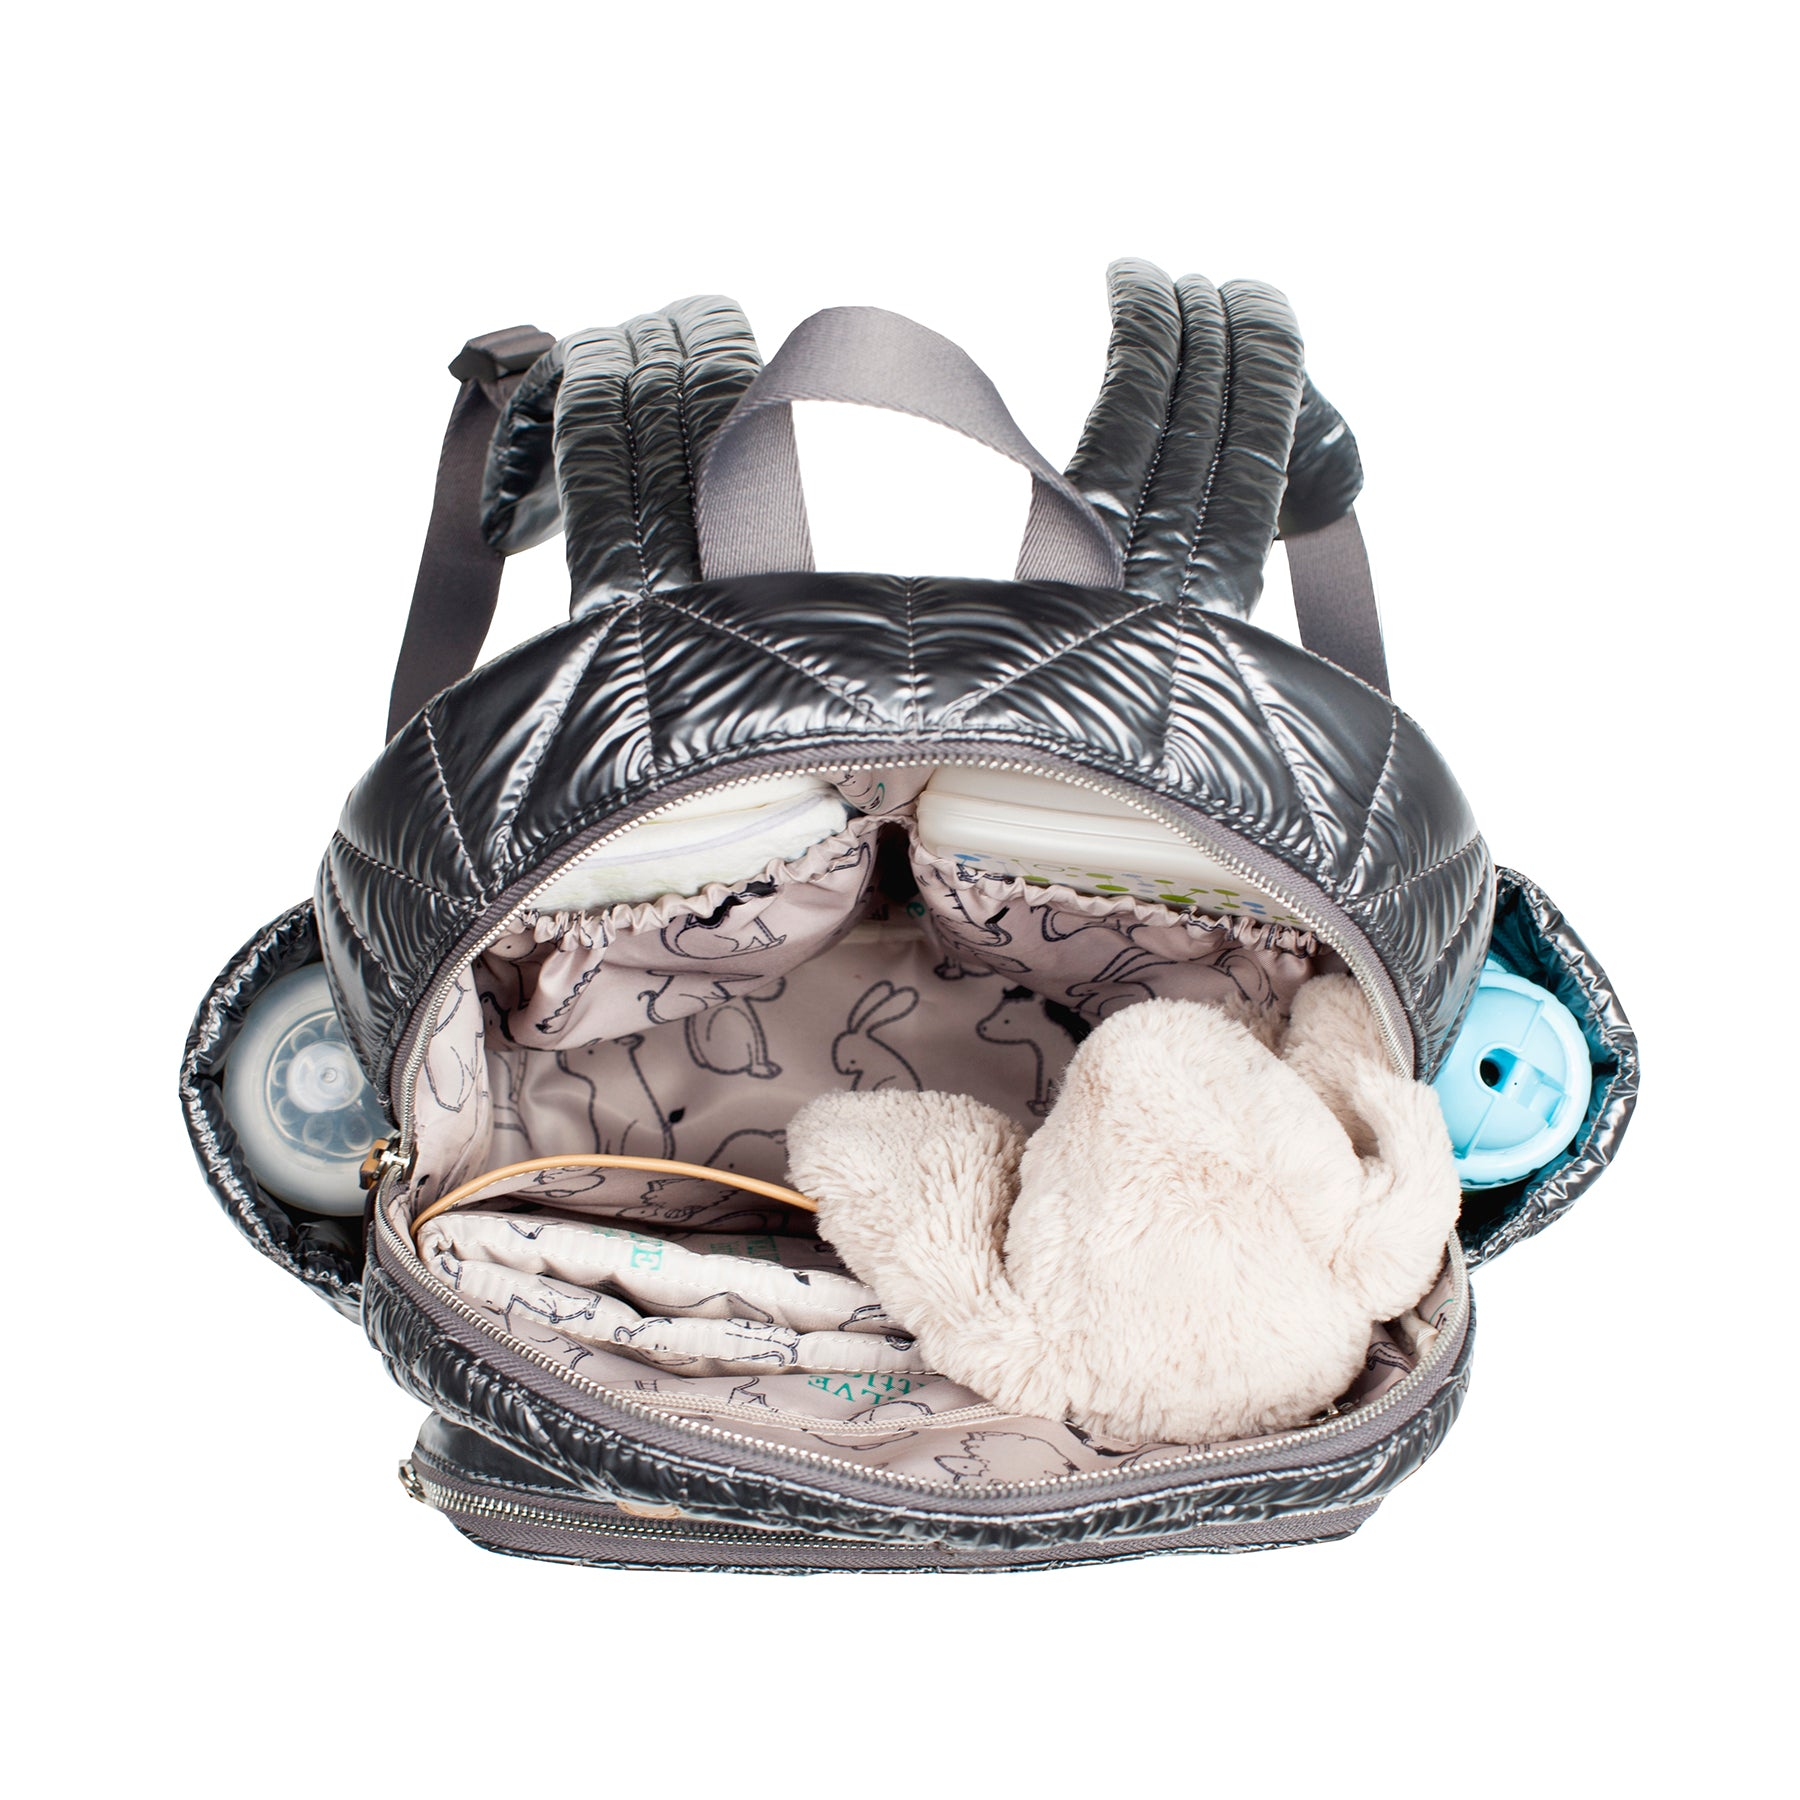 Inside view of pewter companion backpack